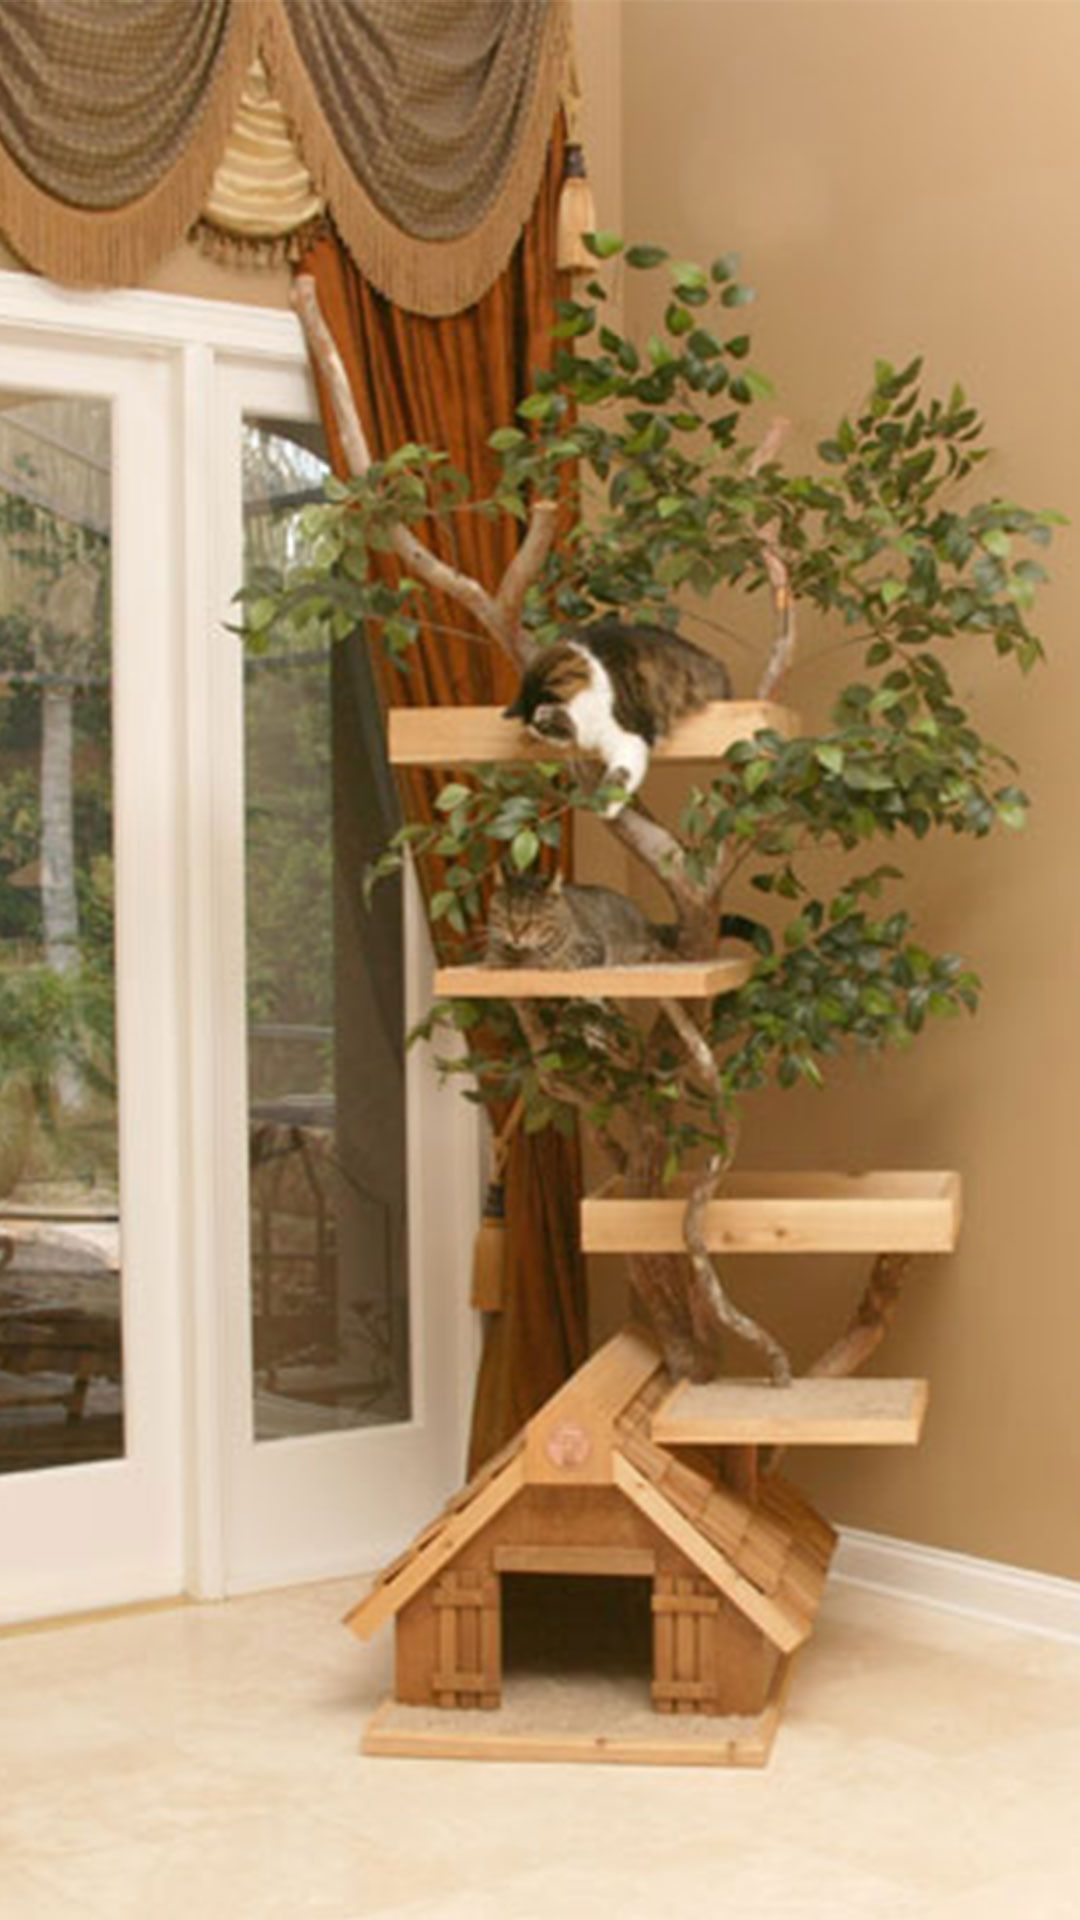 cool cat tree houses with real trees by pet tree house with nice  - cool cat tree houses with real trees by pet tree house with nice homedecoration pet